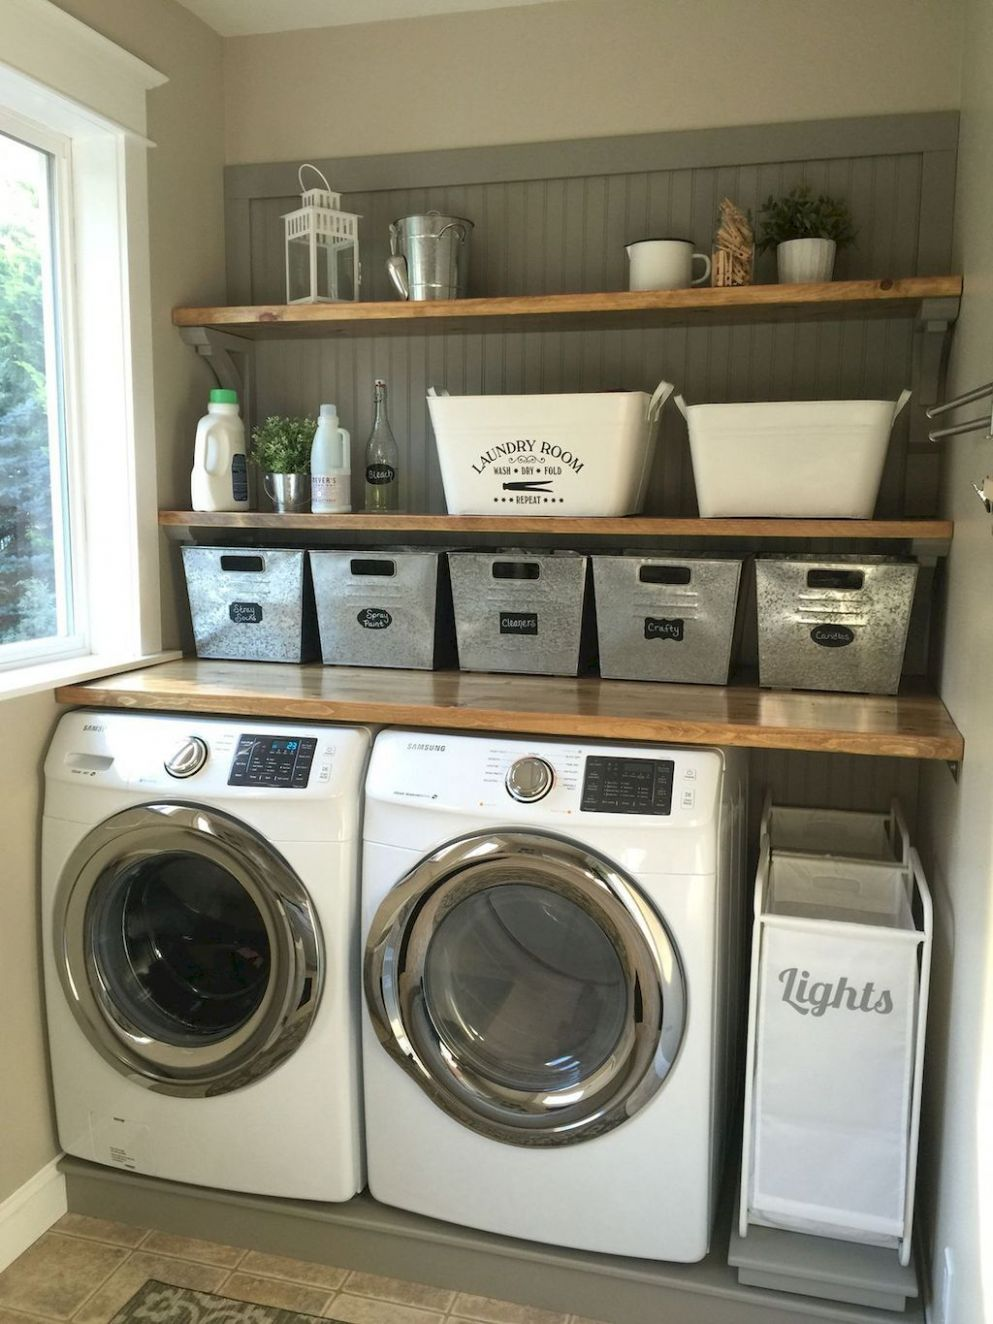 9 Rustic Laundry Room Ideas Decoration Remodel | Laundry room ...